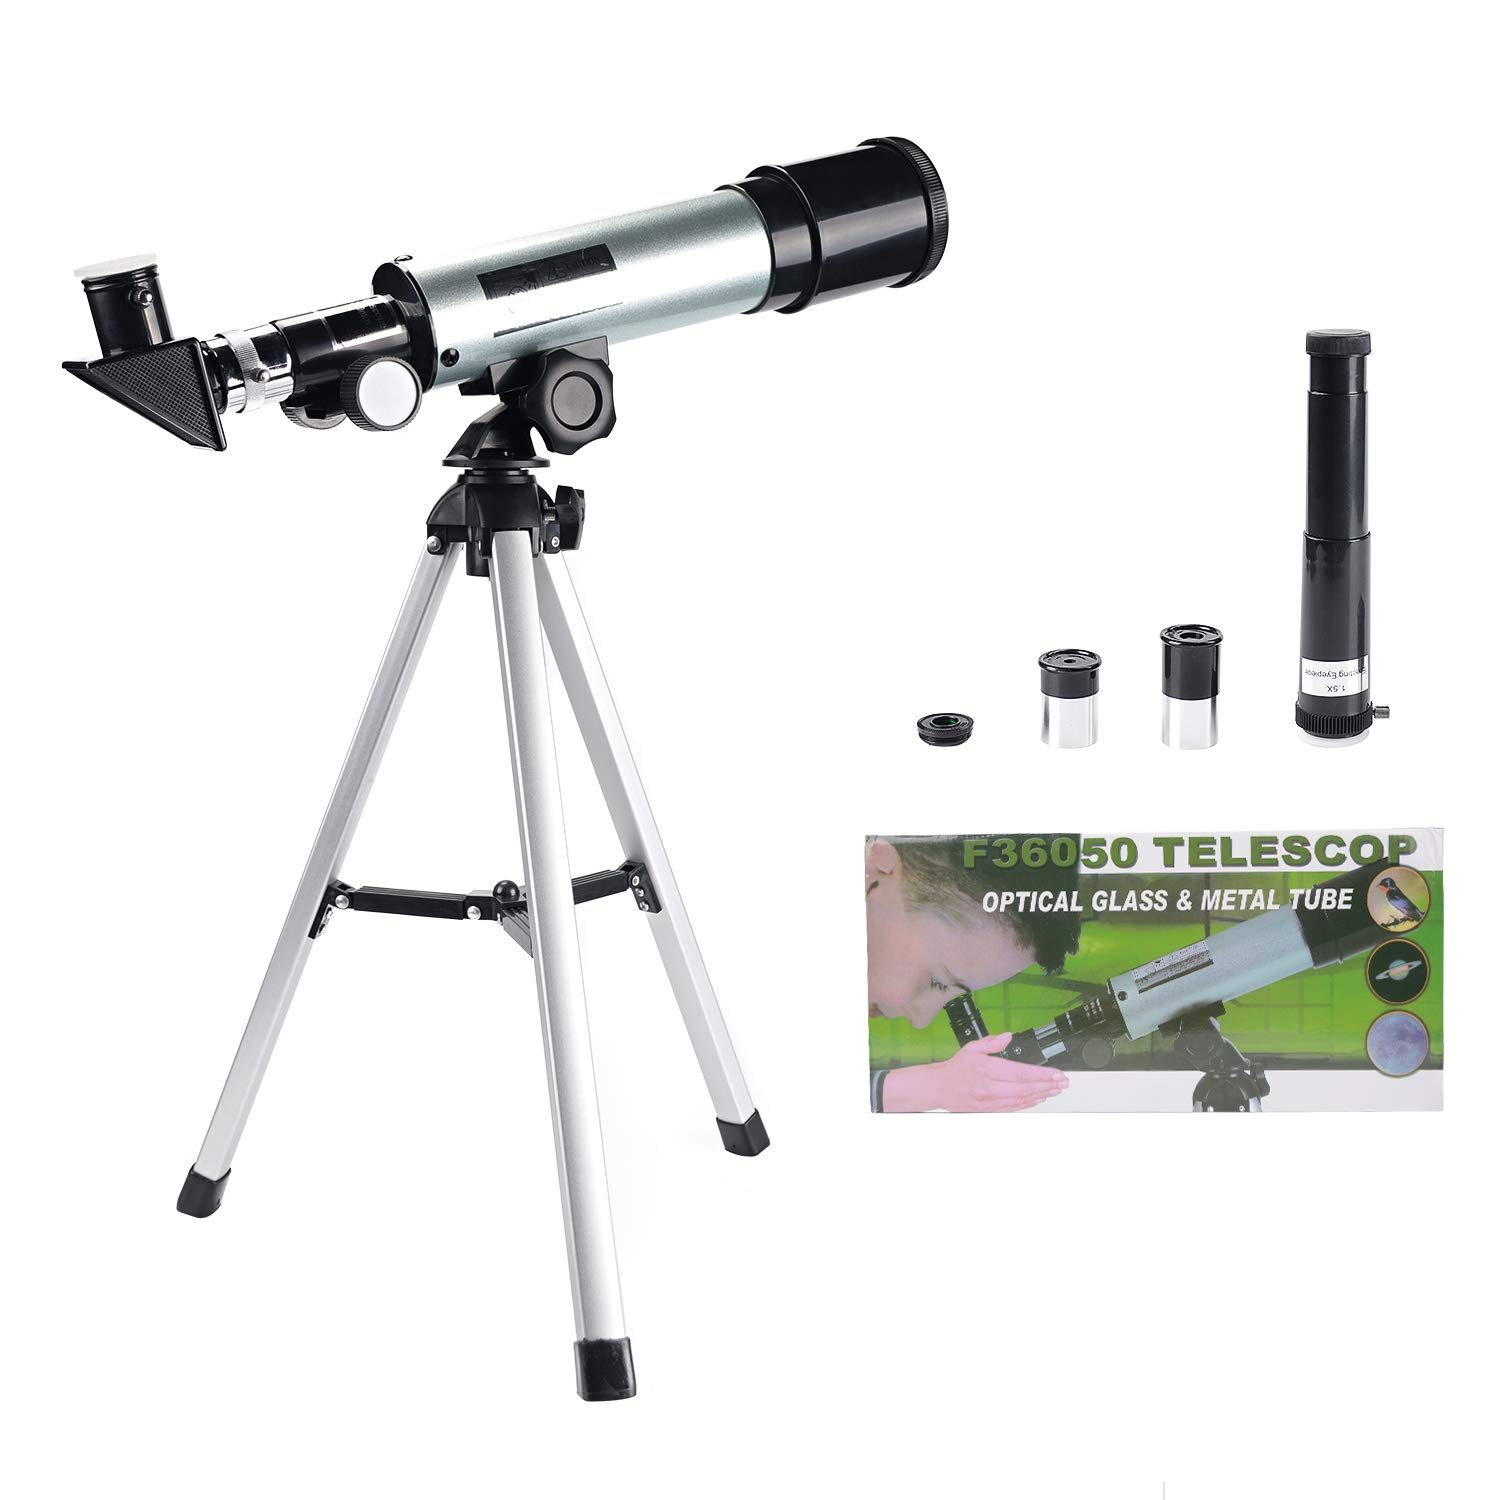 RONHAN Astronomical Telescope for Kids/Beginners, Toy Telescope with 3 Eyepieces Finderscope for Astronomy, Educational Outdoor Toy for Parents-Children